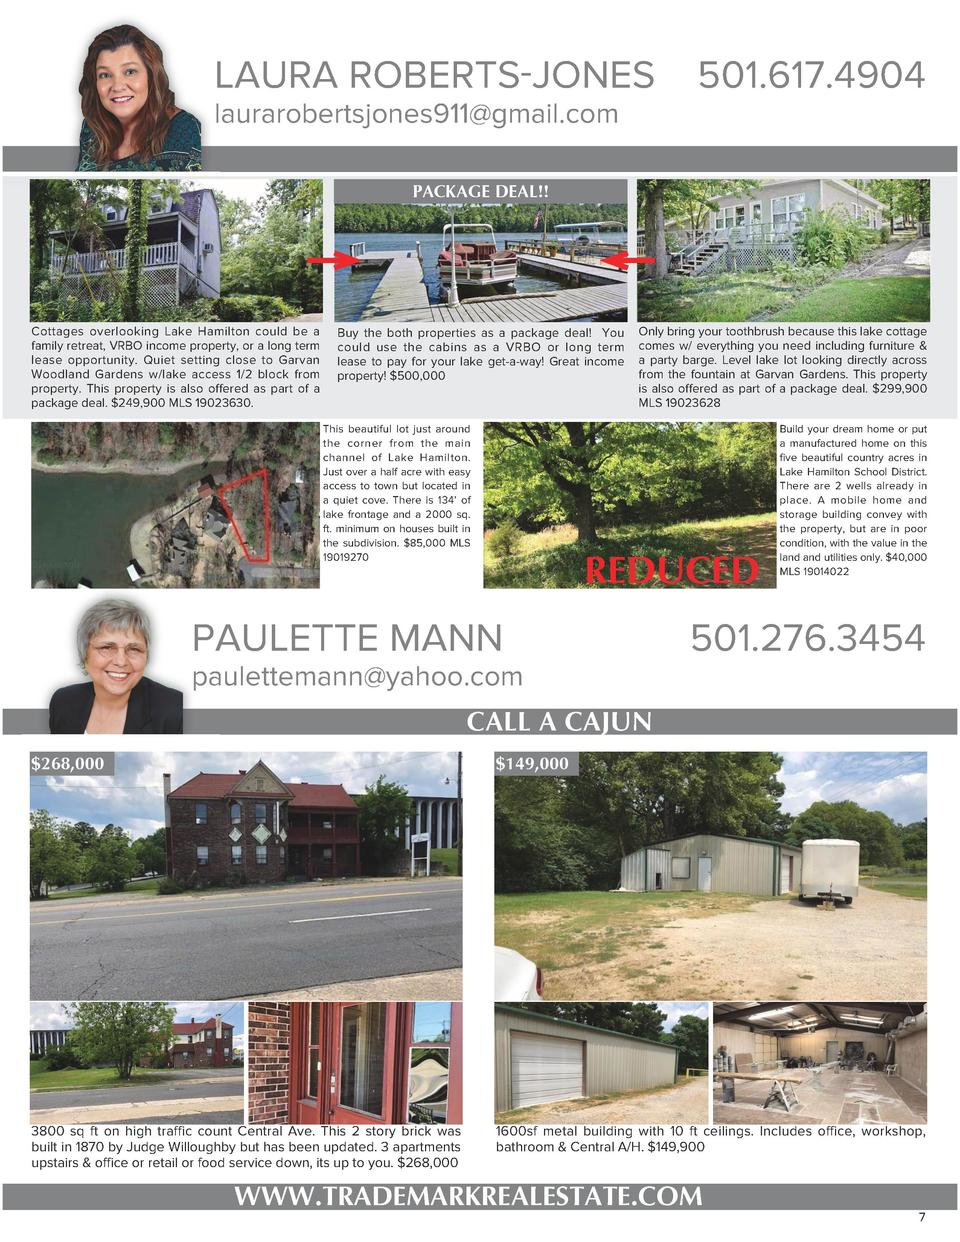 LAURA ROBERTS-JONES laurarobertsjones911 gmail.com  501.617.4904  PACKAGE DEAL    Cottages overlooking Lake Hamilton could...